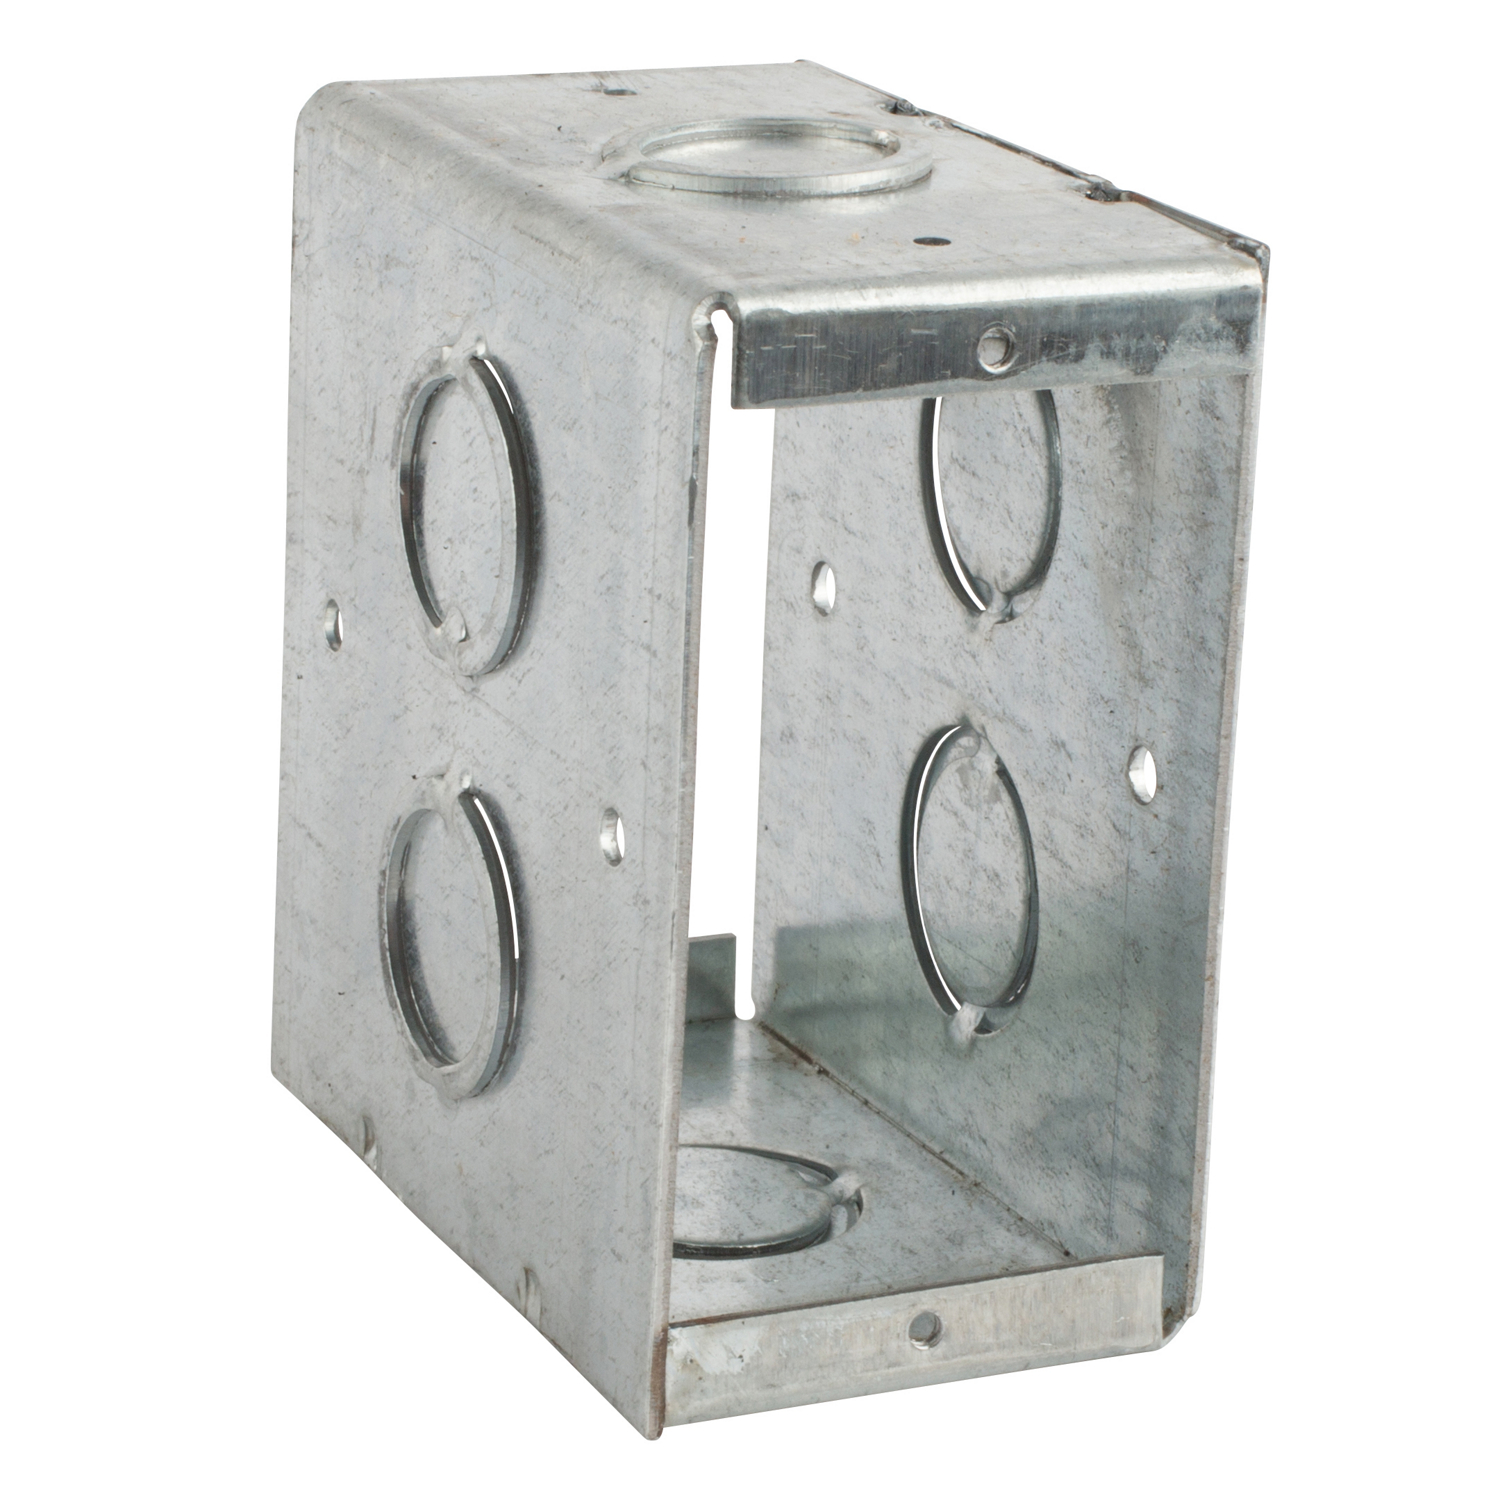 STCCBTW4 STL-CTY CBTW-4 3-1/2D MASON TH;Steel City® CBTW-4 Through-Wall Masonry Box, Steel, 24 cu-in, 1 Outlet, 6 Knockouts